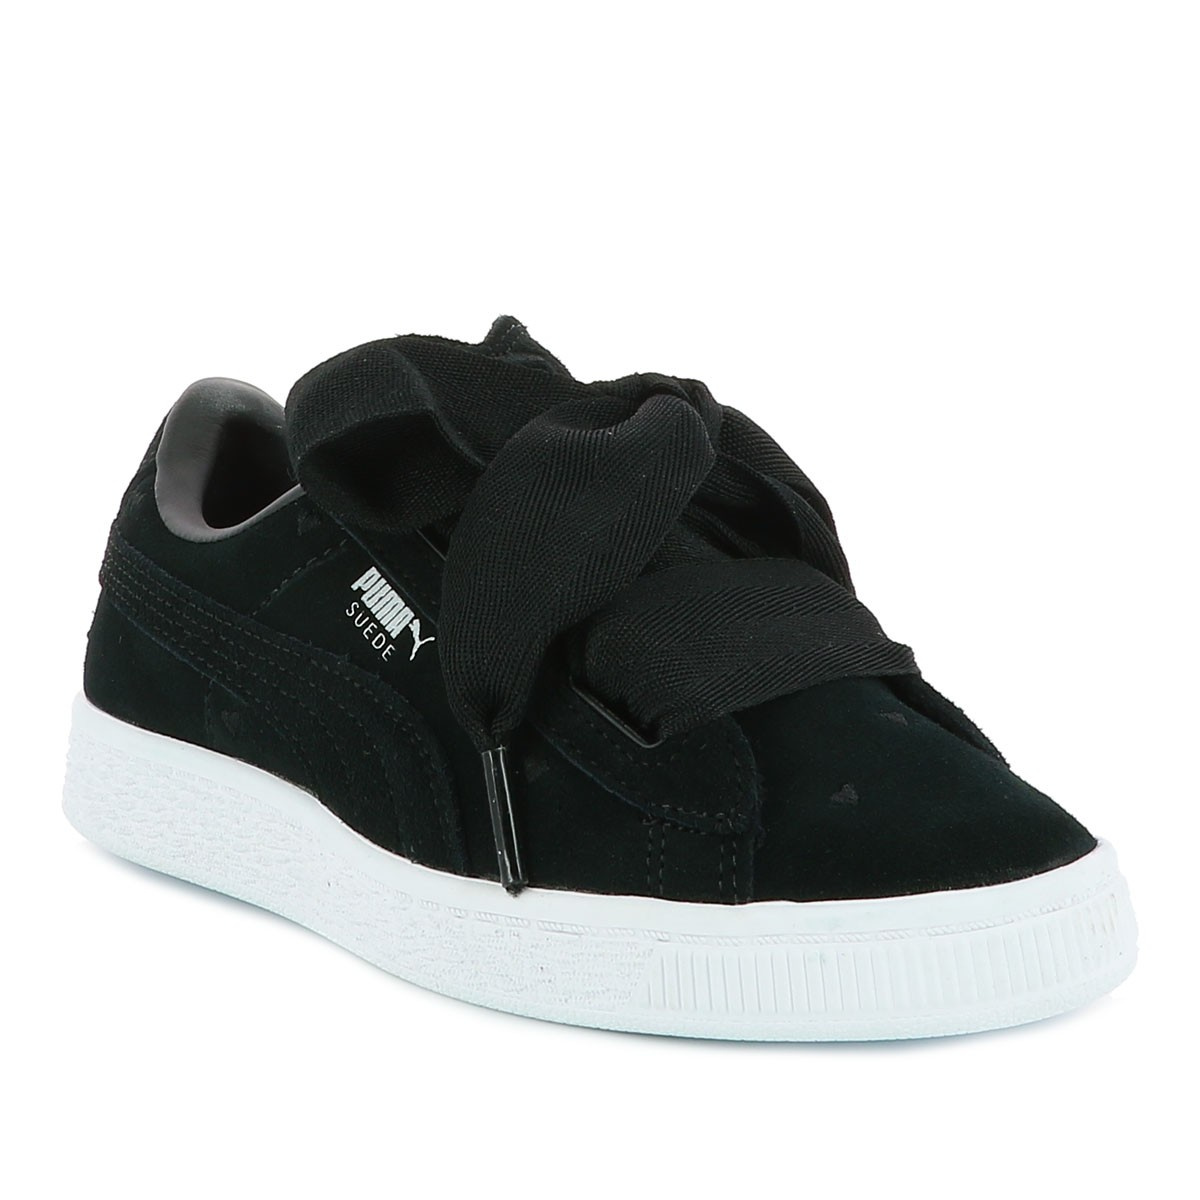 chaussures fille puma 32